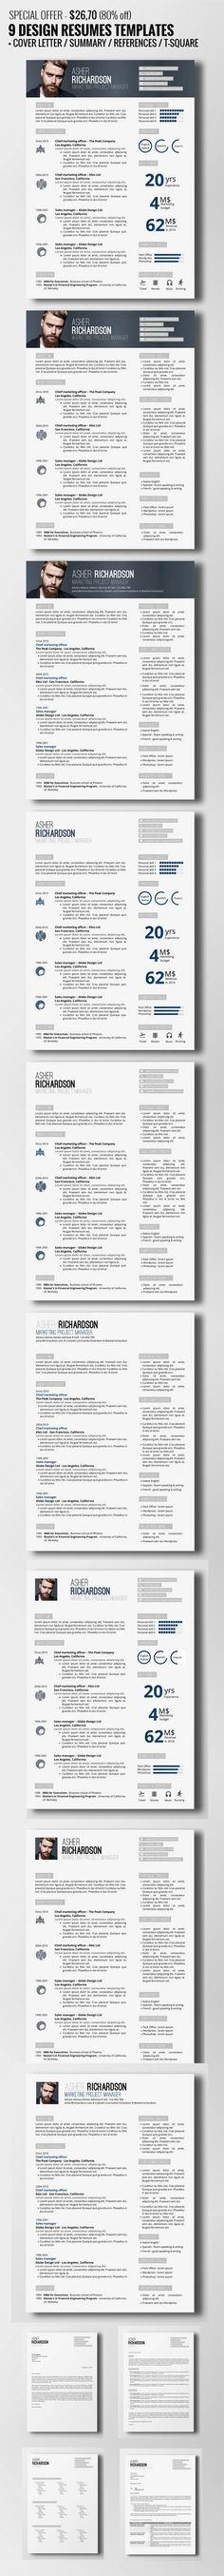 435 best Resume images on Pinterest Resume design, Design resume - two page resume samples